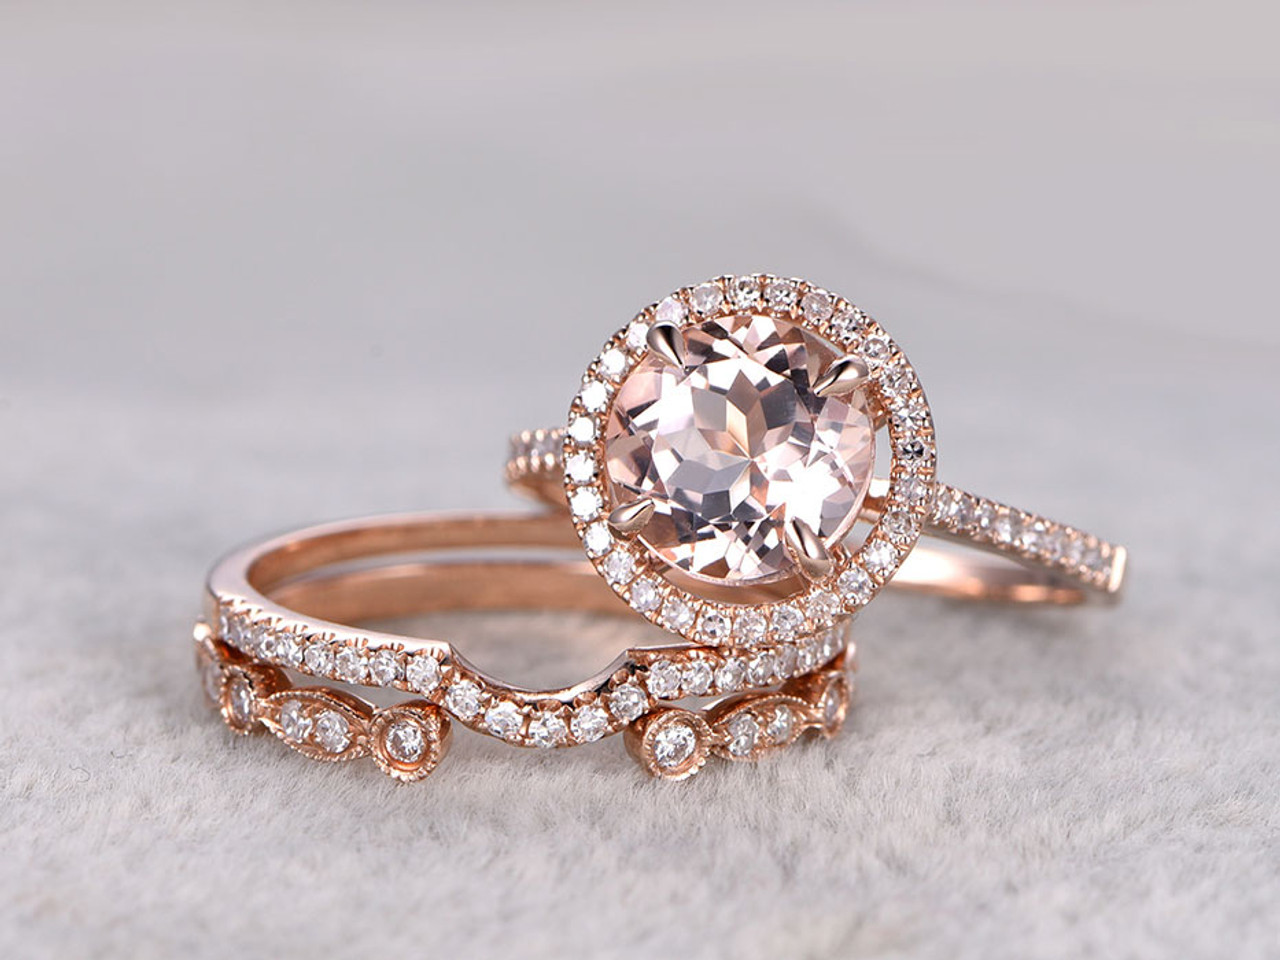 3pcs Morganite Rose Gold Wedding Set Diamond Eternity Ring 8mm Round